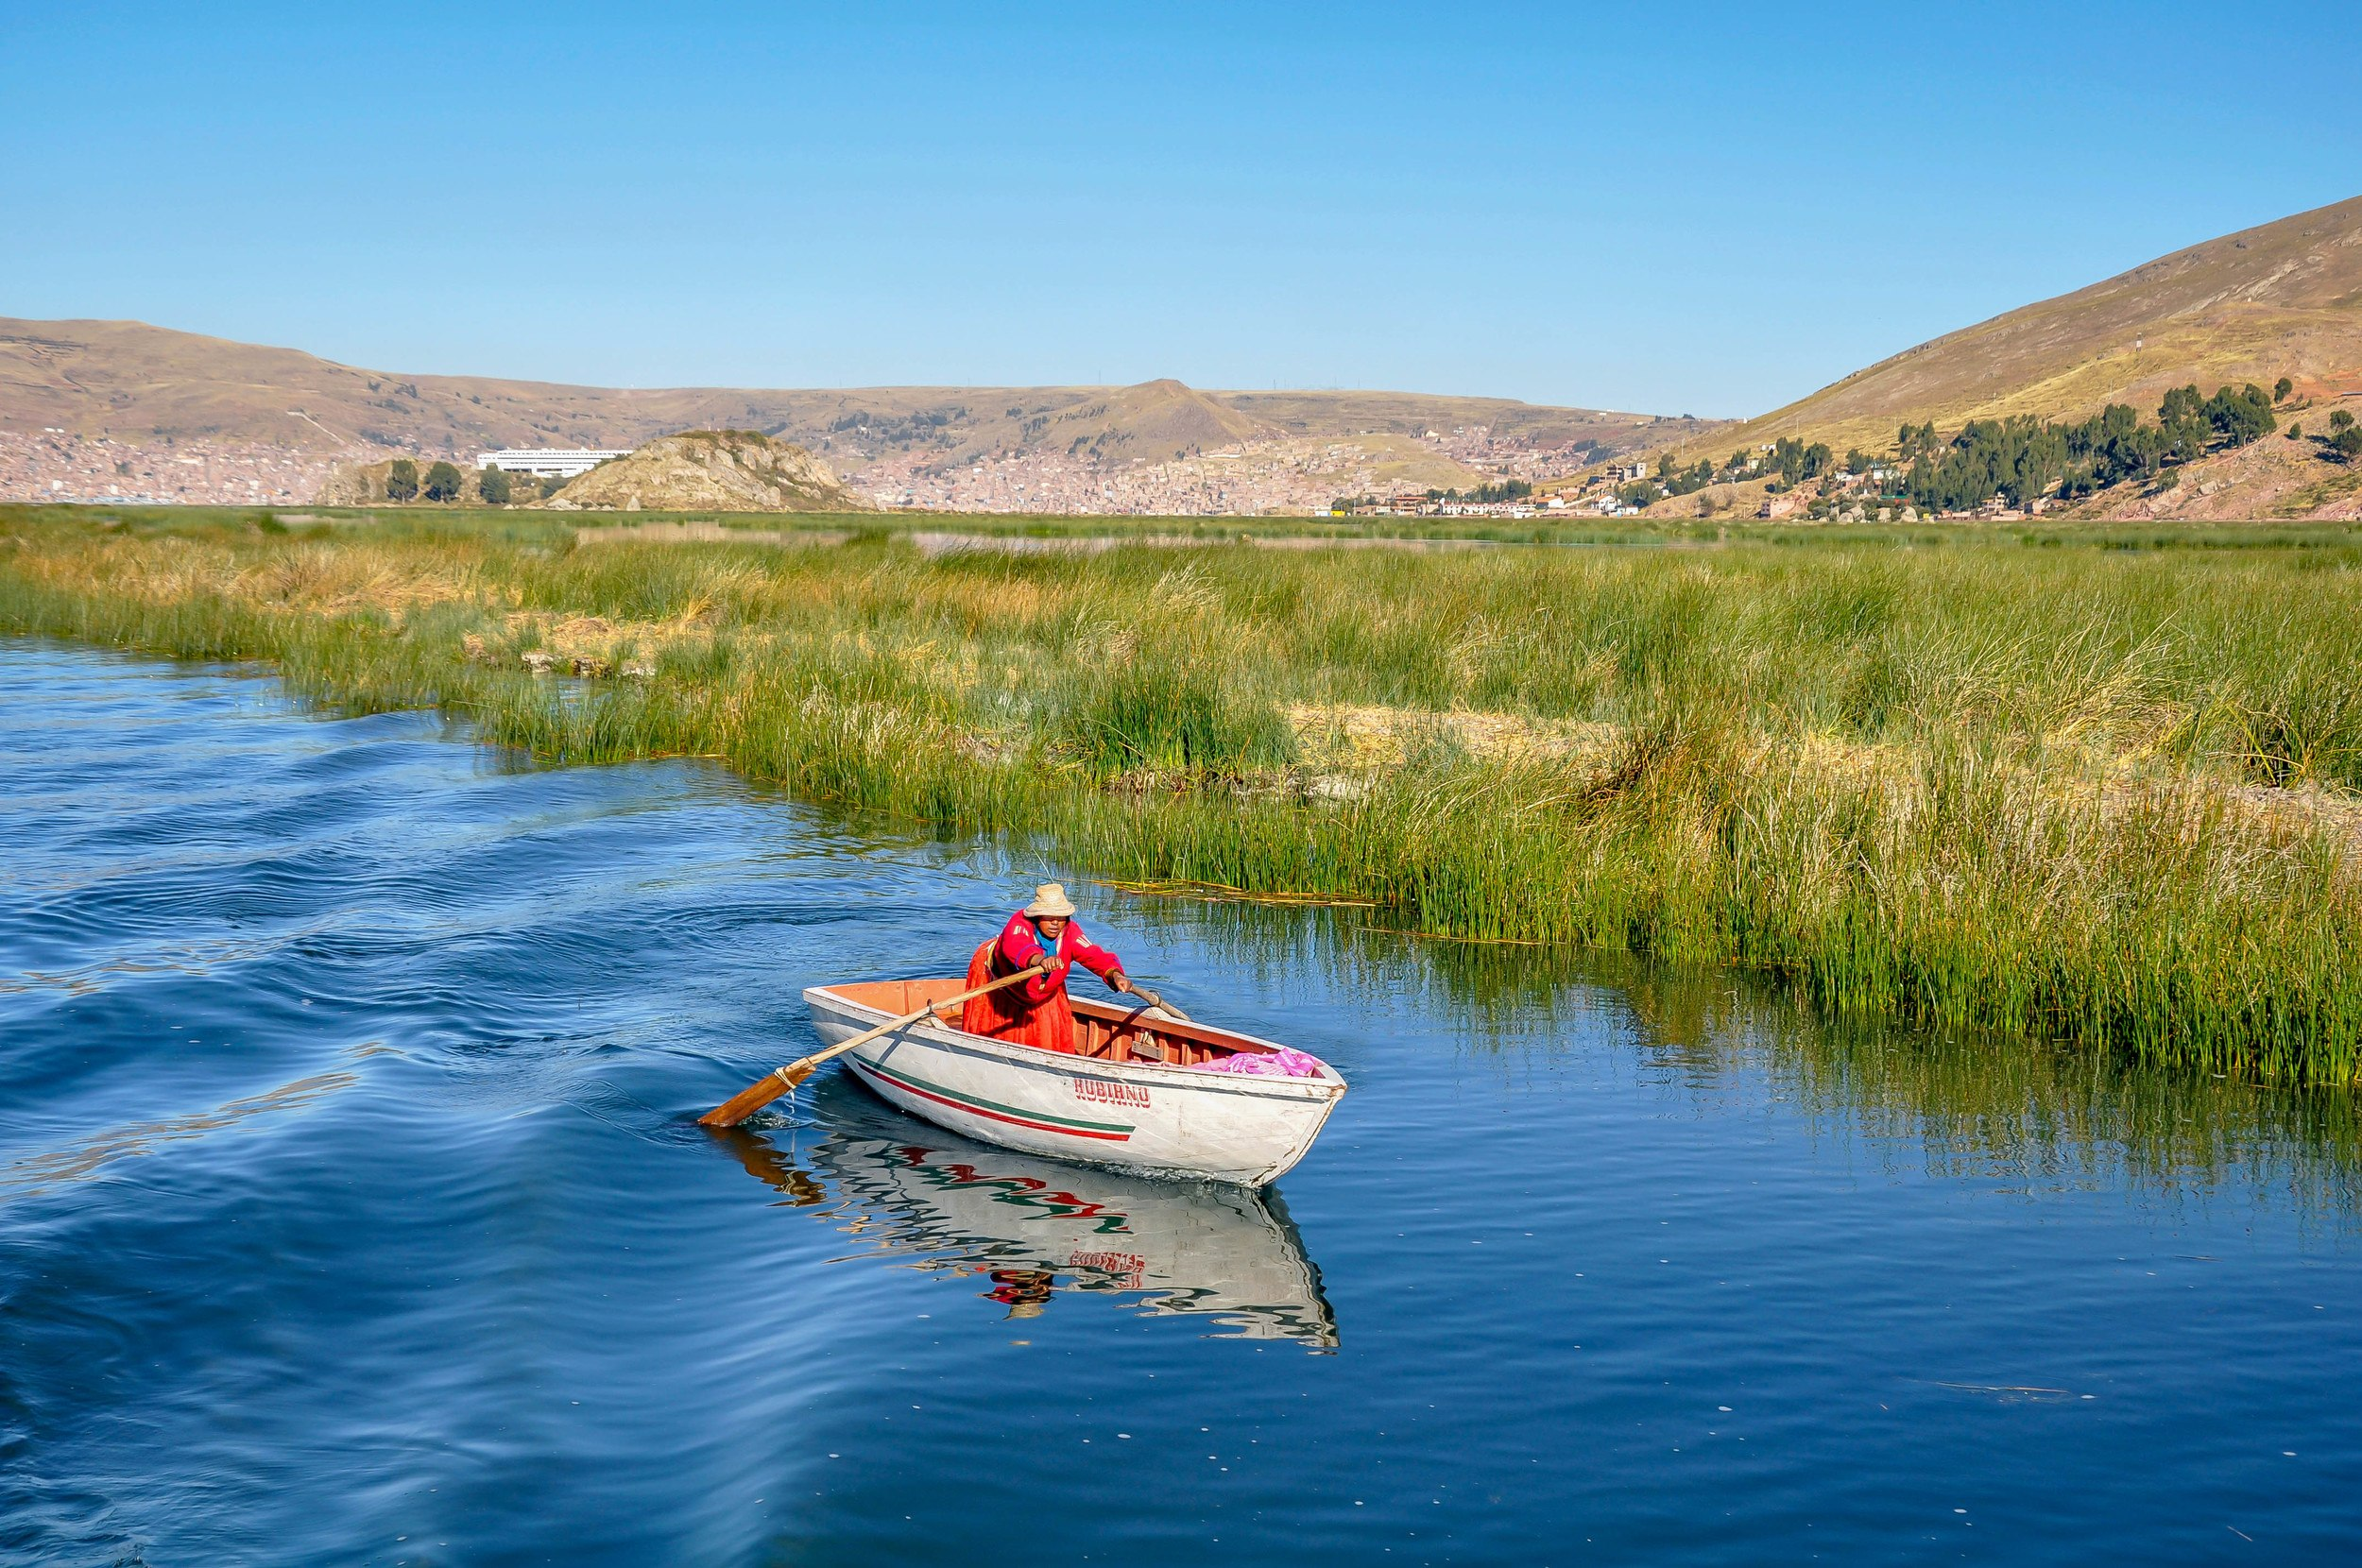 Woman in red dress rowing boat in Lake Titicaca, Peru